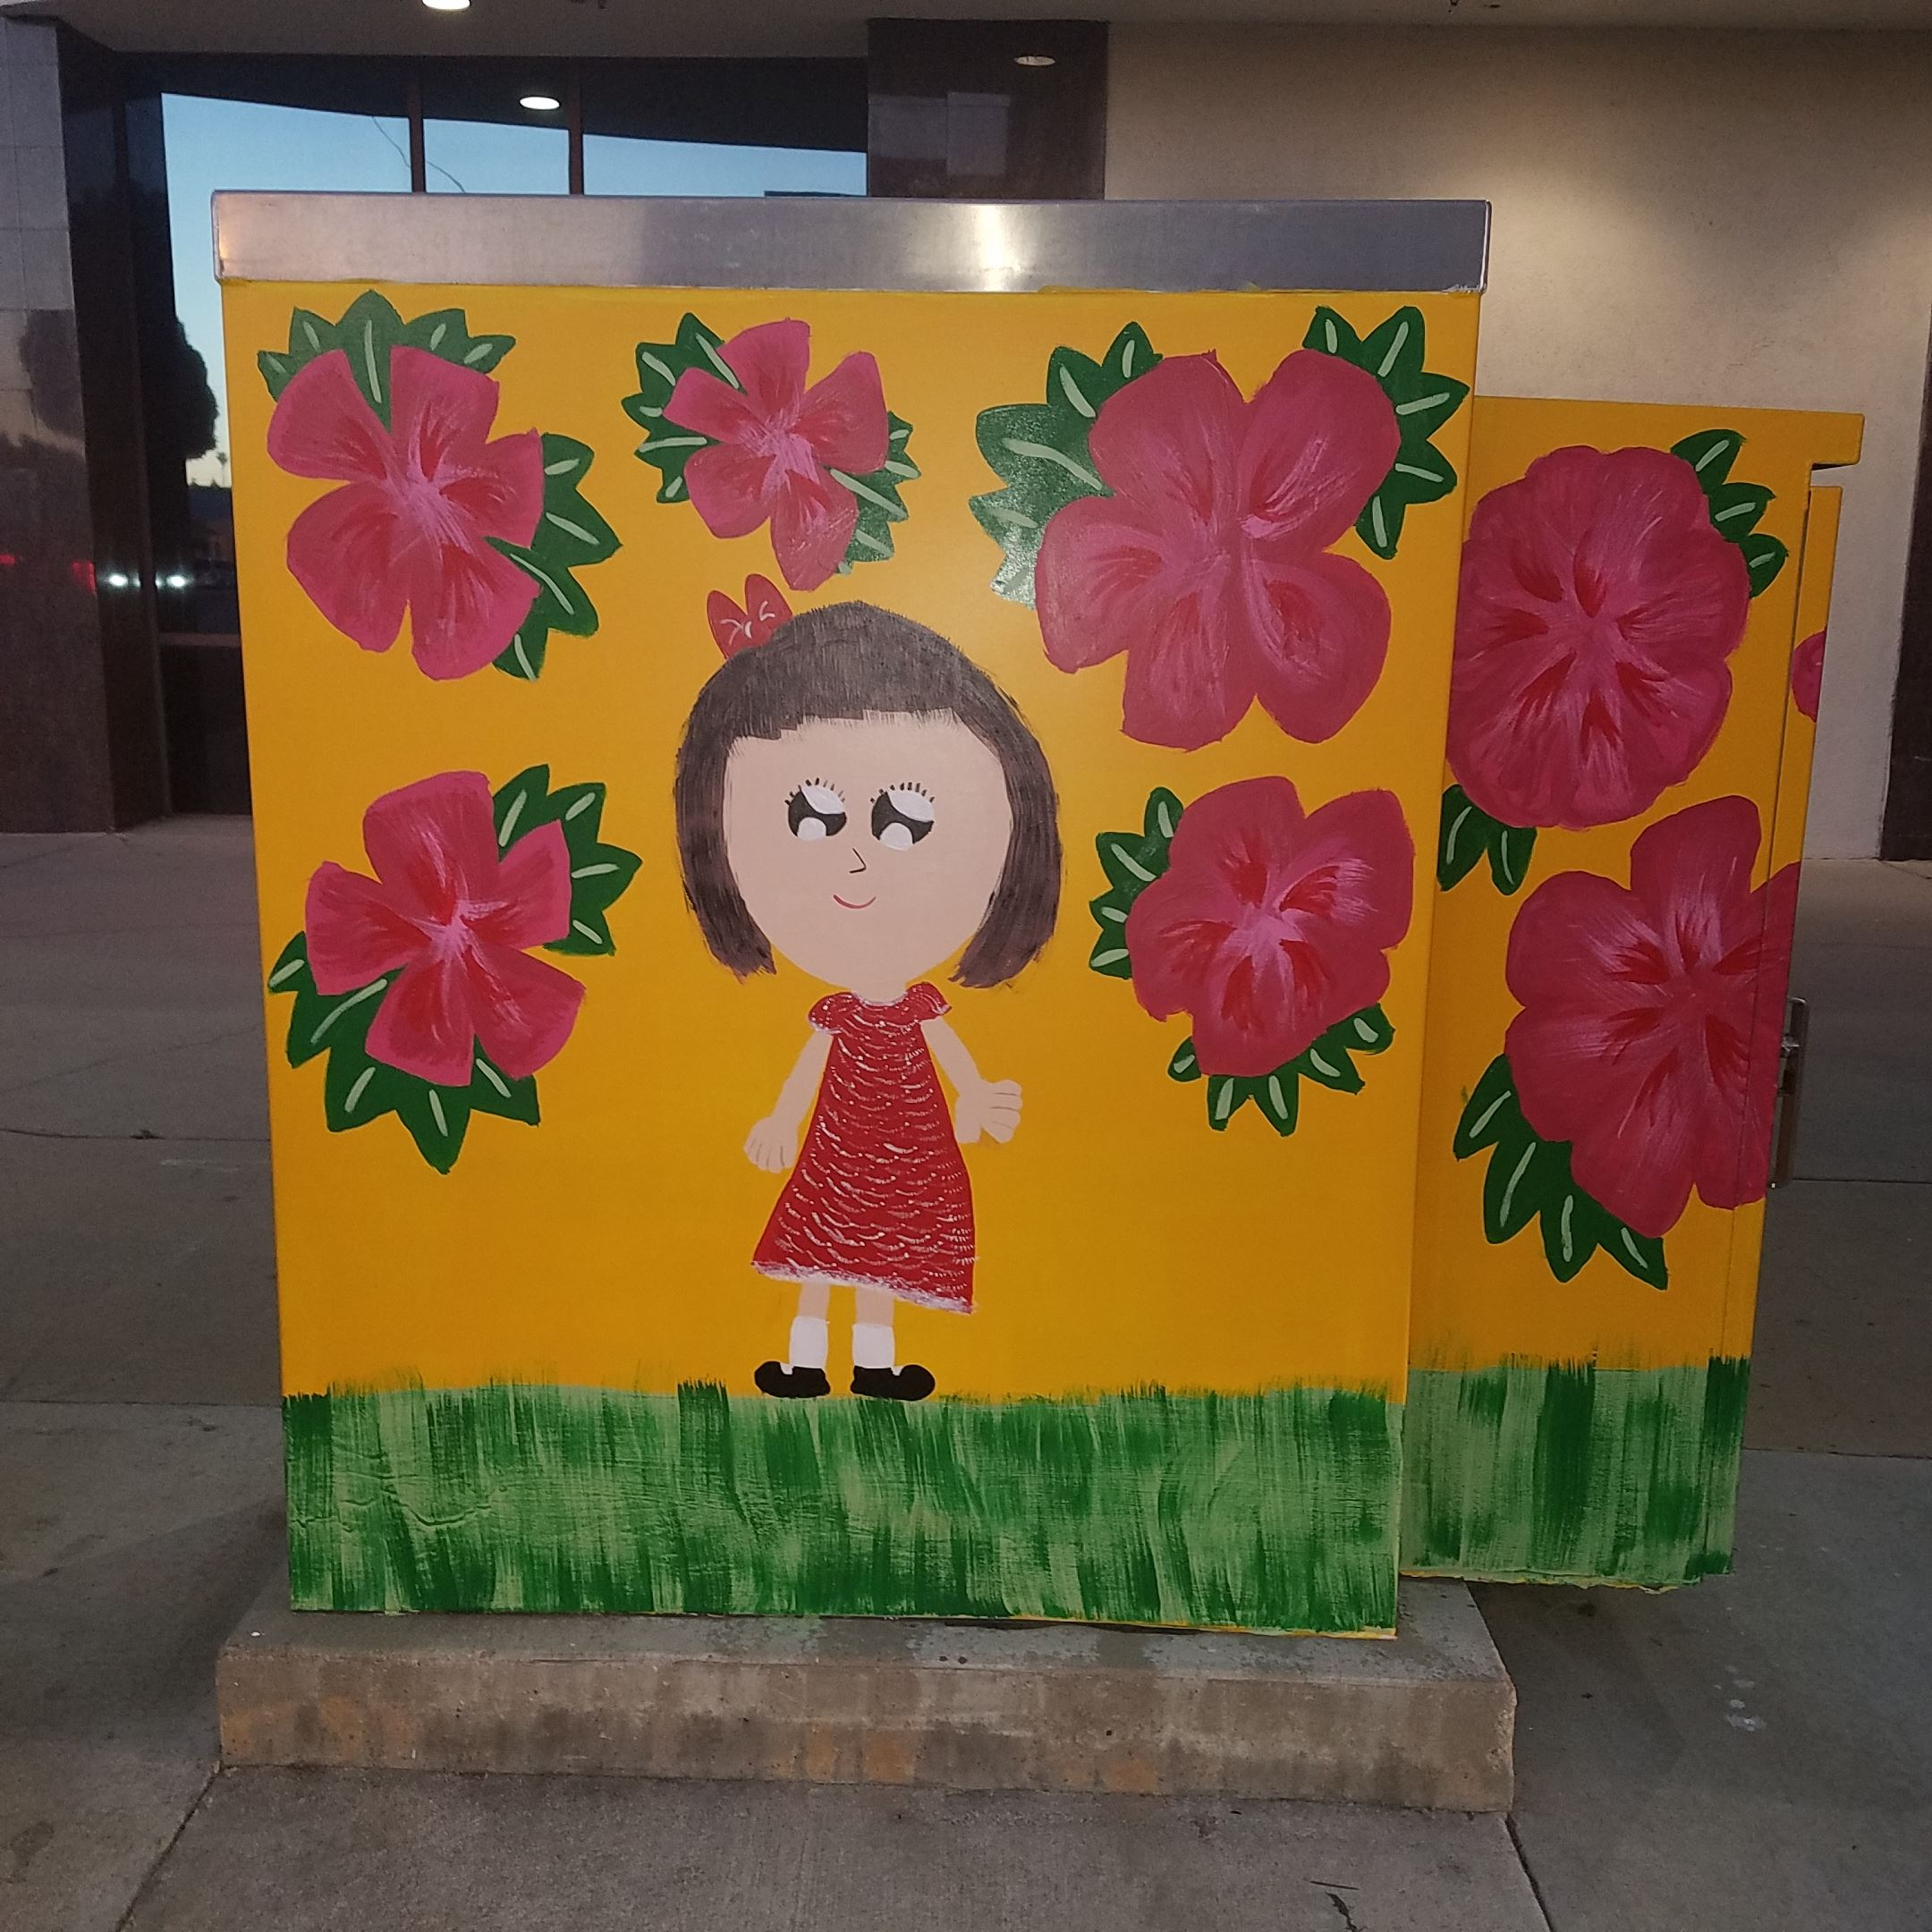 Electrical box Beautification project by St Stephen Martyr students at Ramona and Garvey May 2017